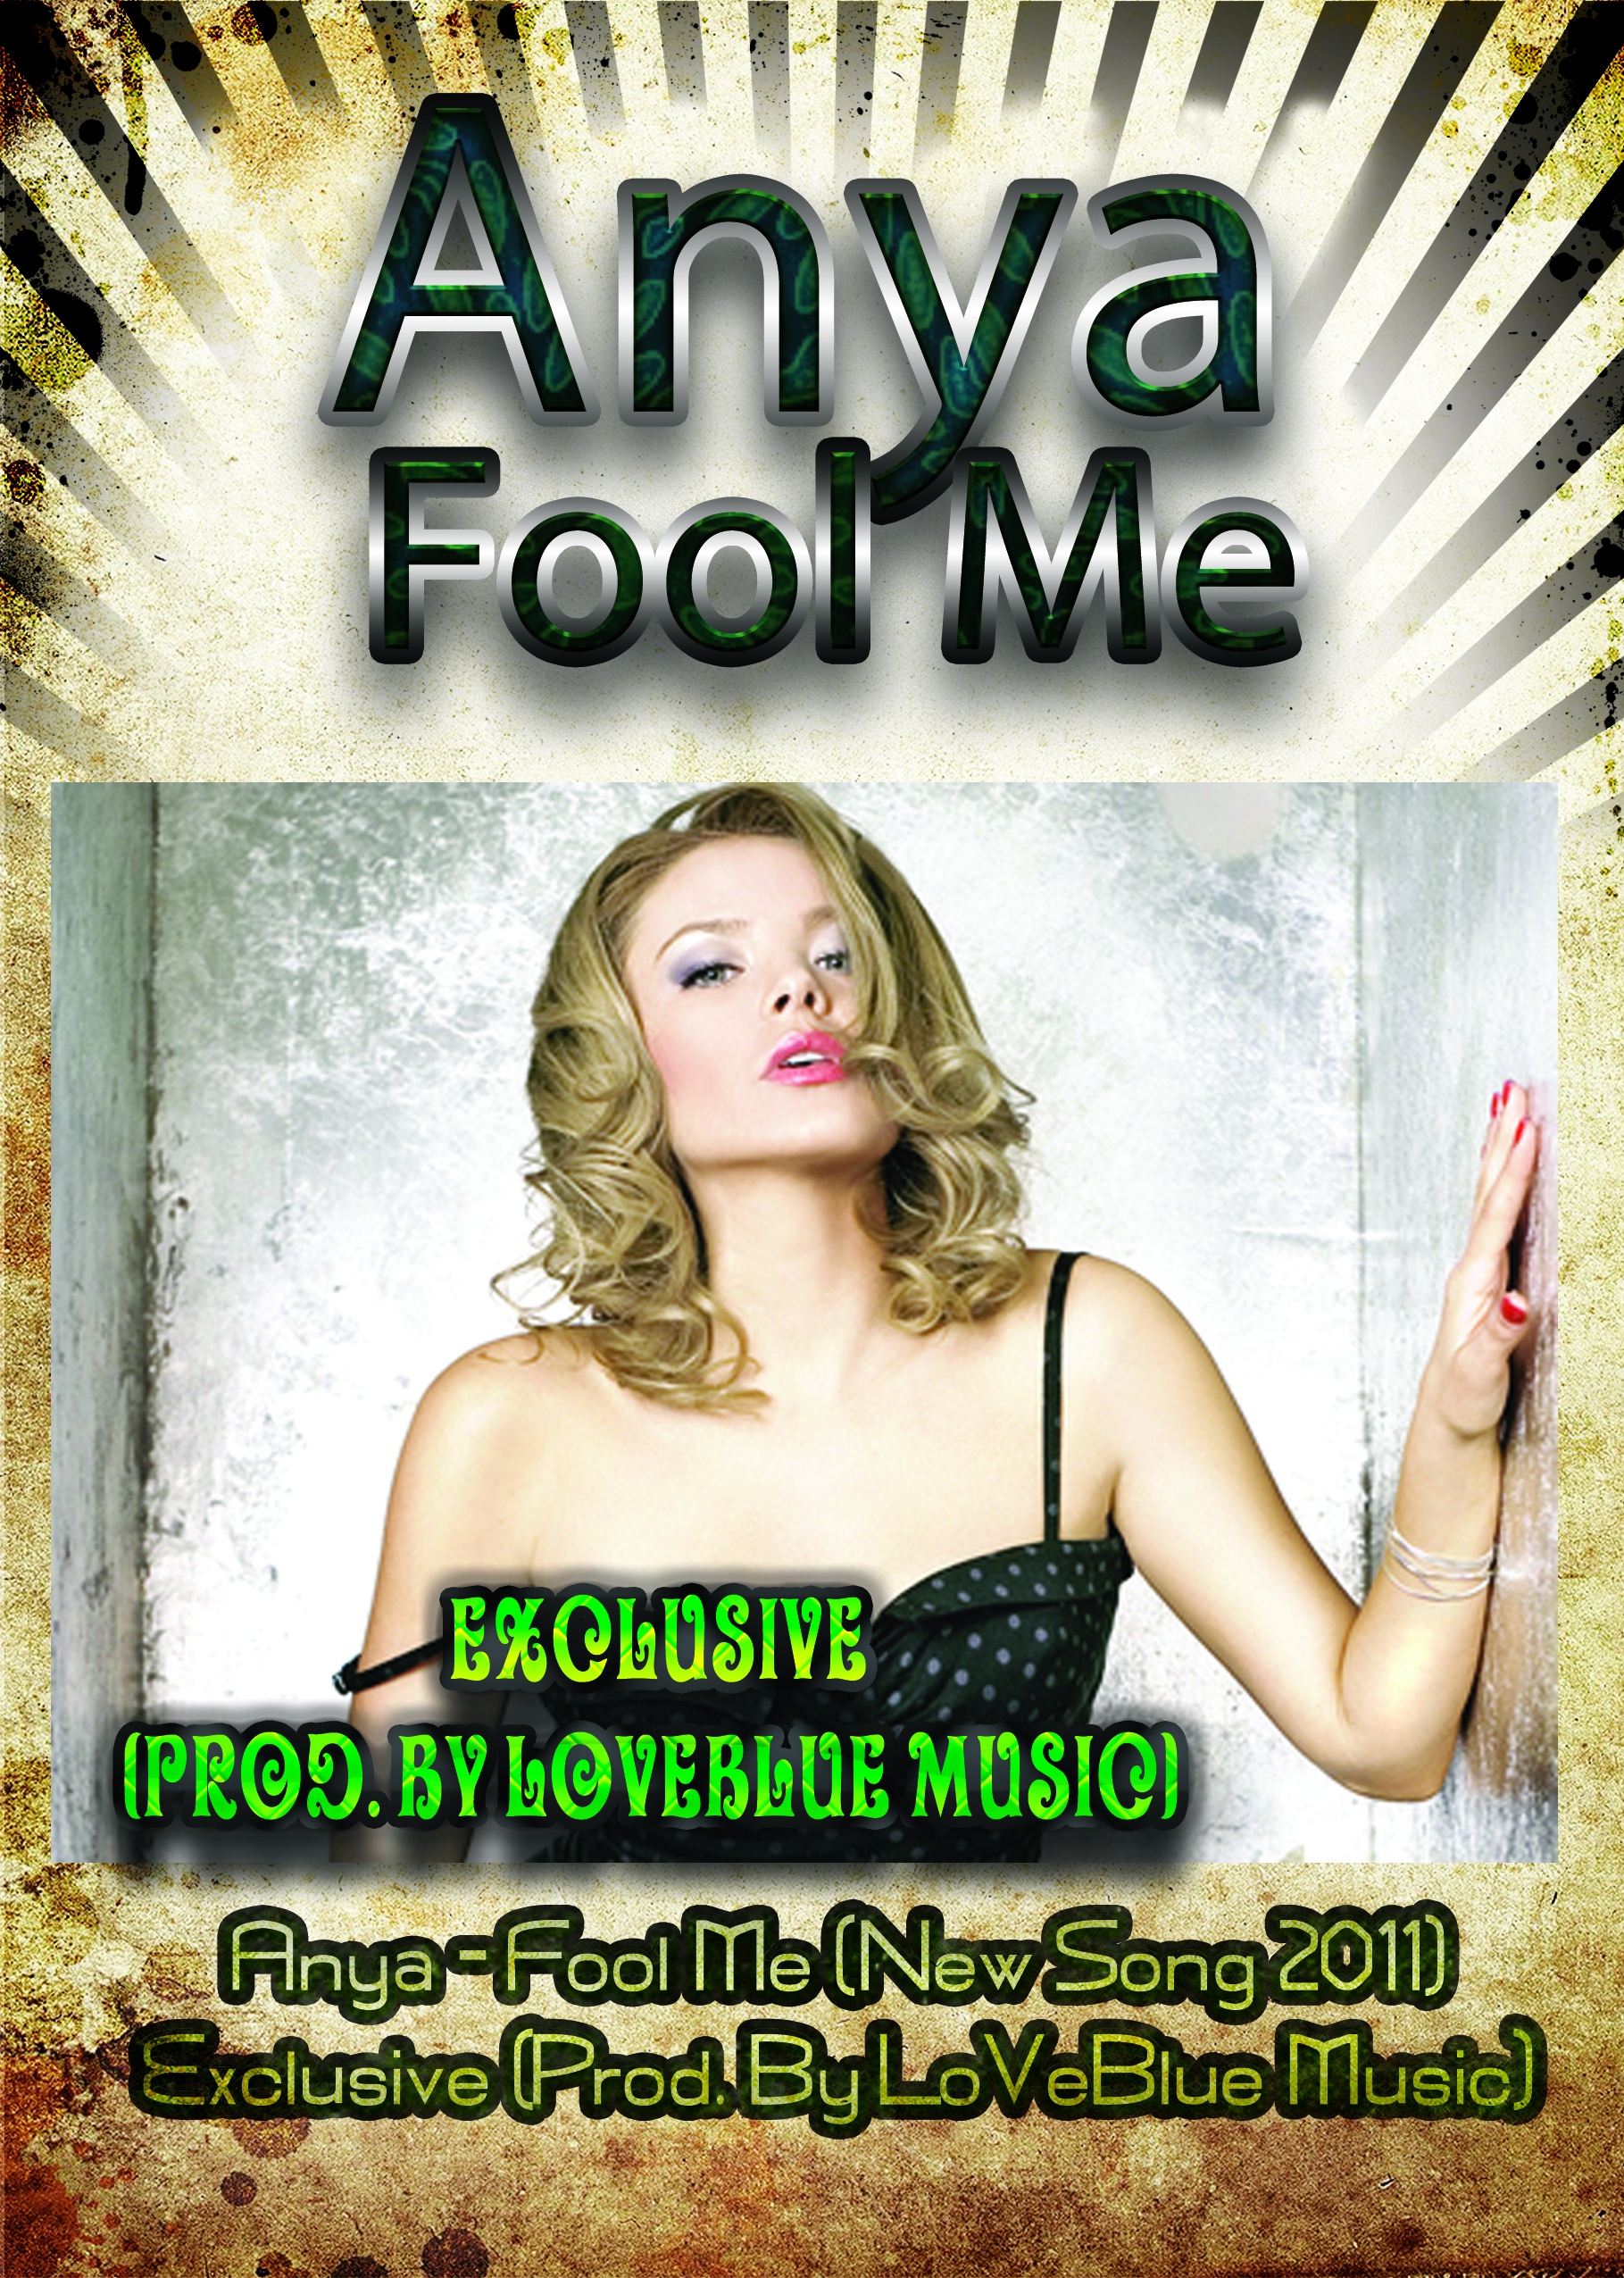 Anya - Fool Me (New Song 2011) Exclusive (CD ORIGINAL)